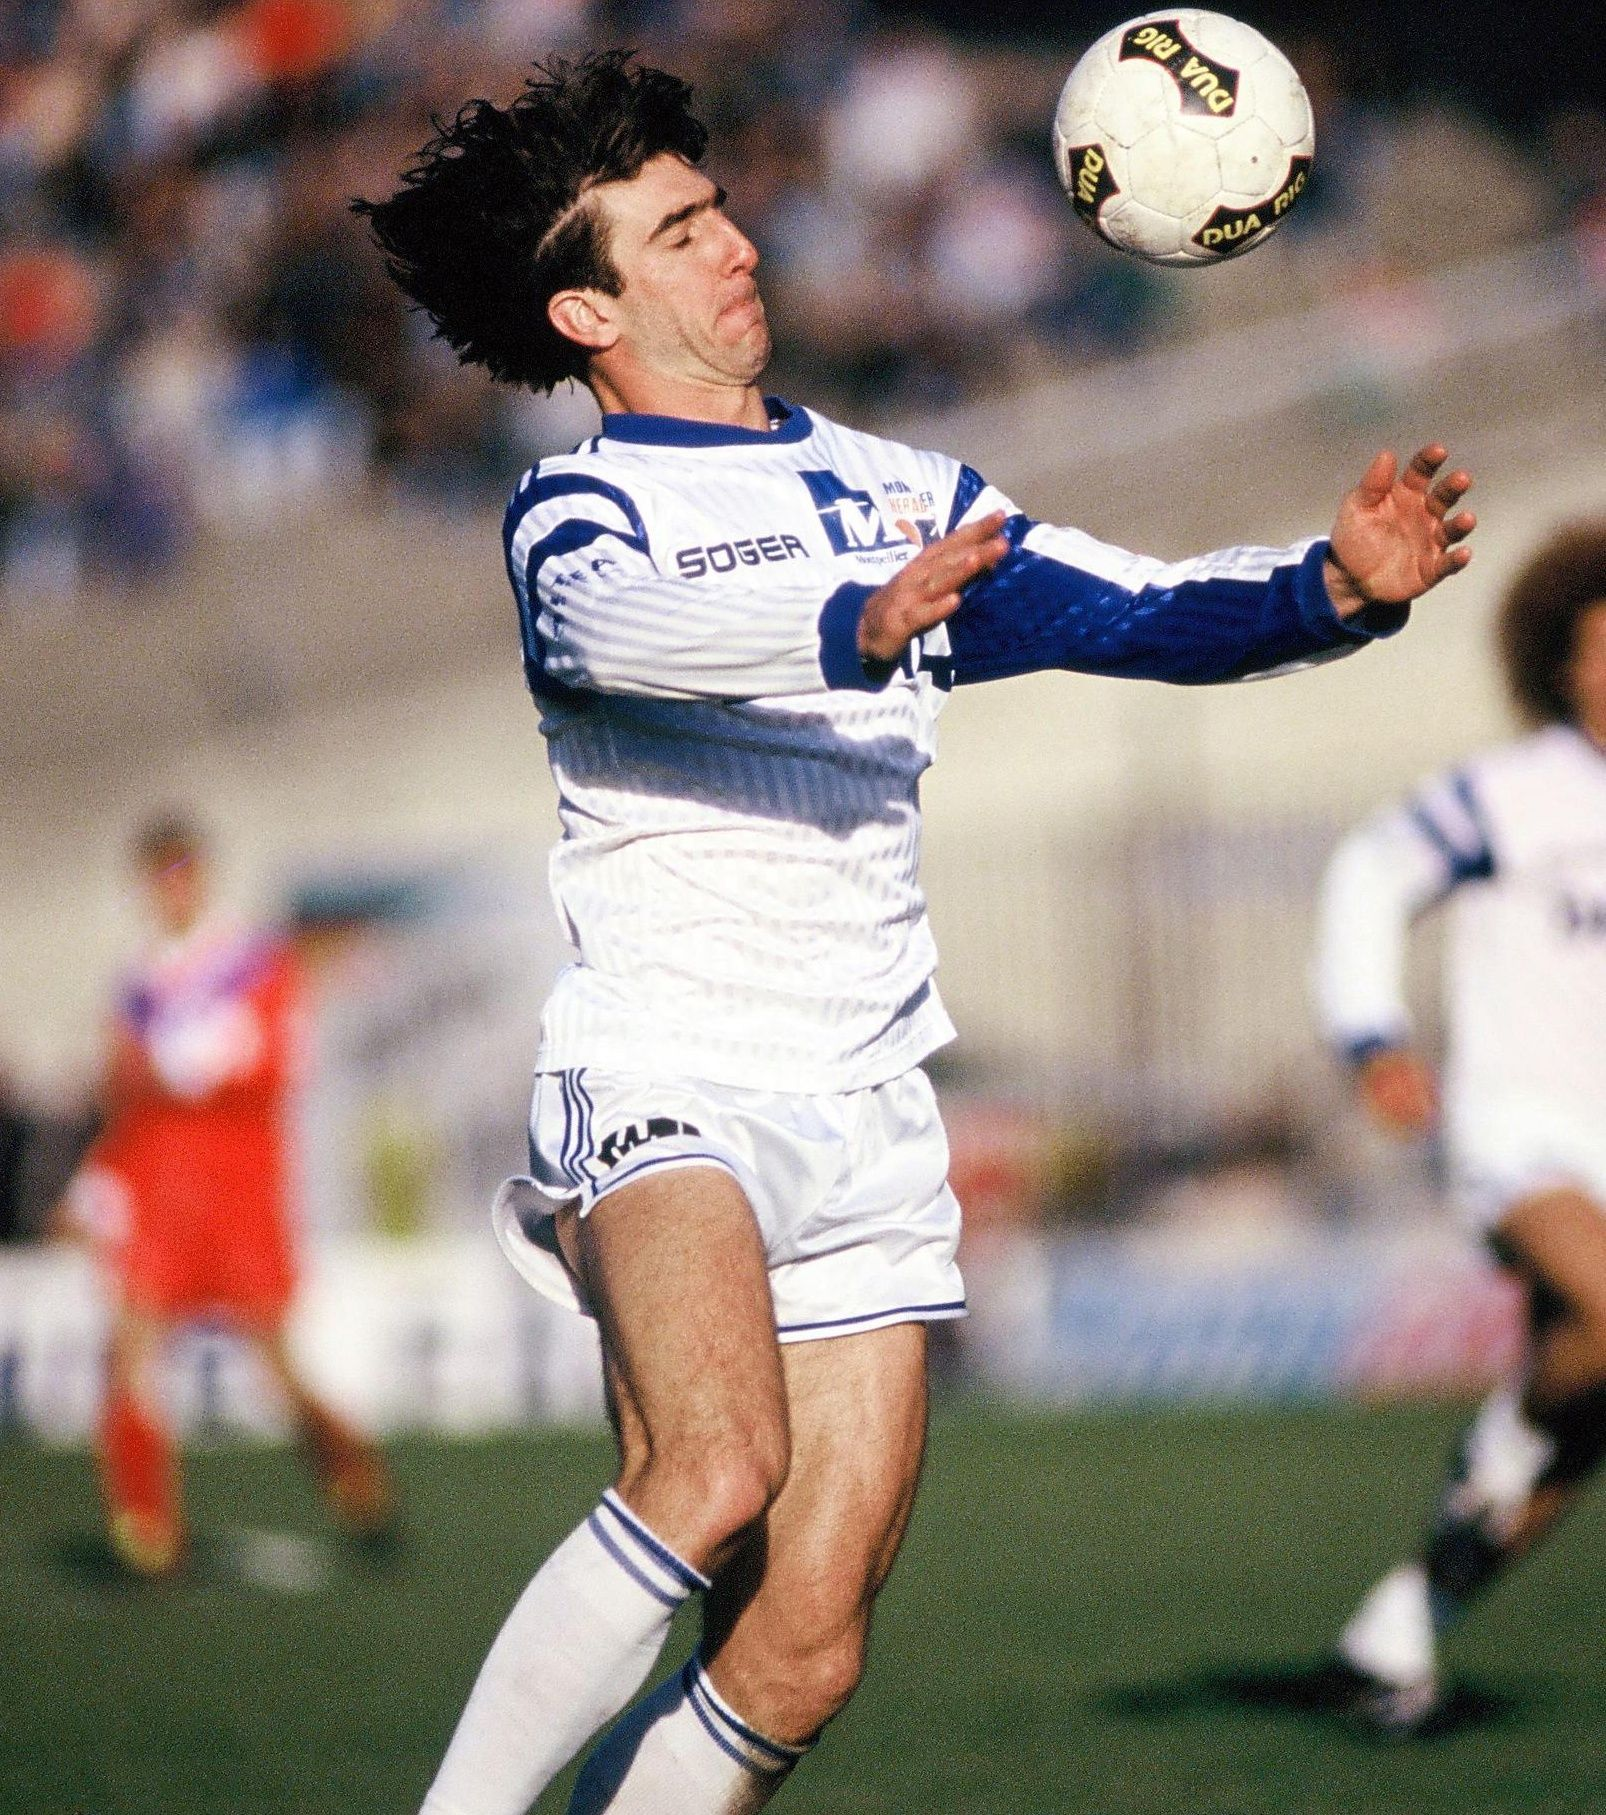 A few months later, cantona made history by scoring the. Картинки по запросу cantona Montpellier Hérault Sport Club ...